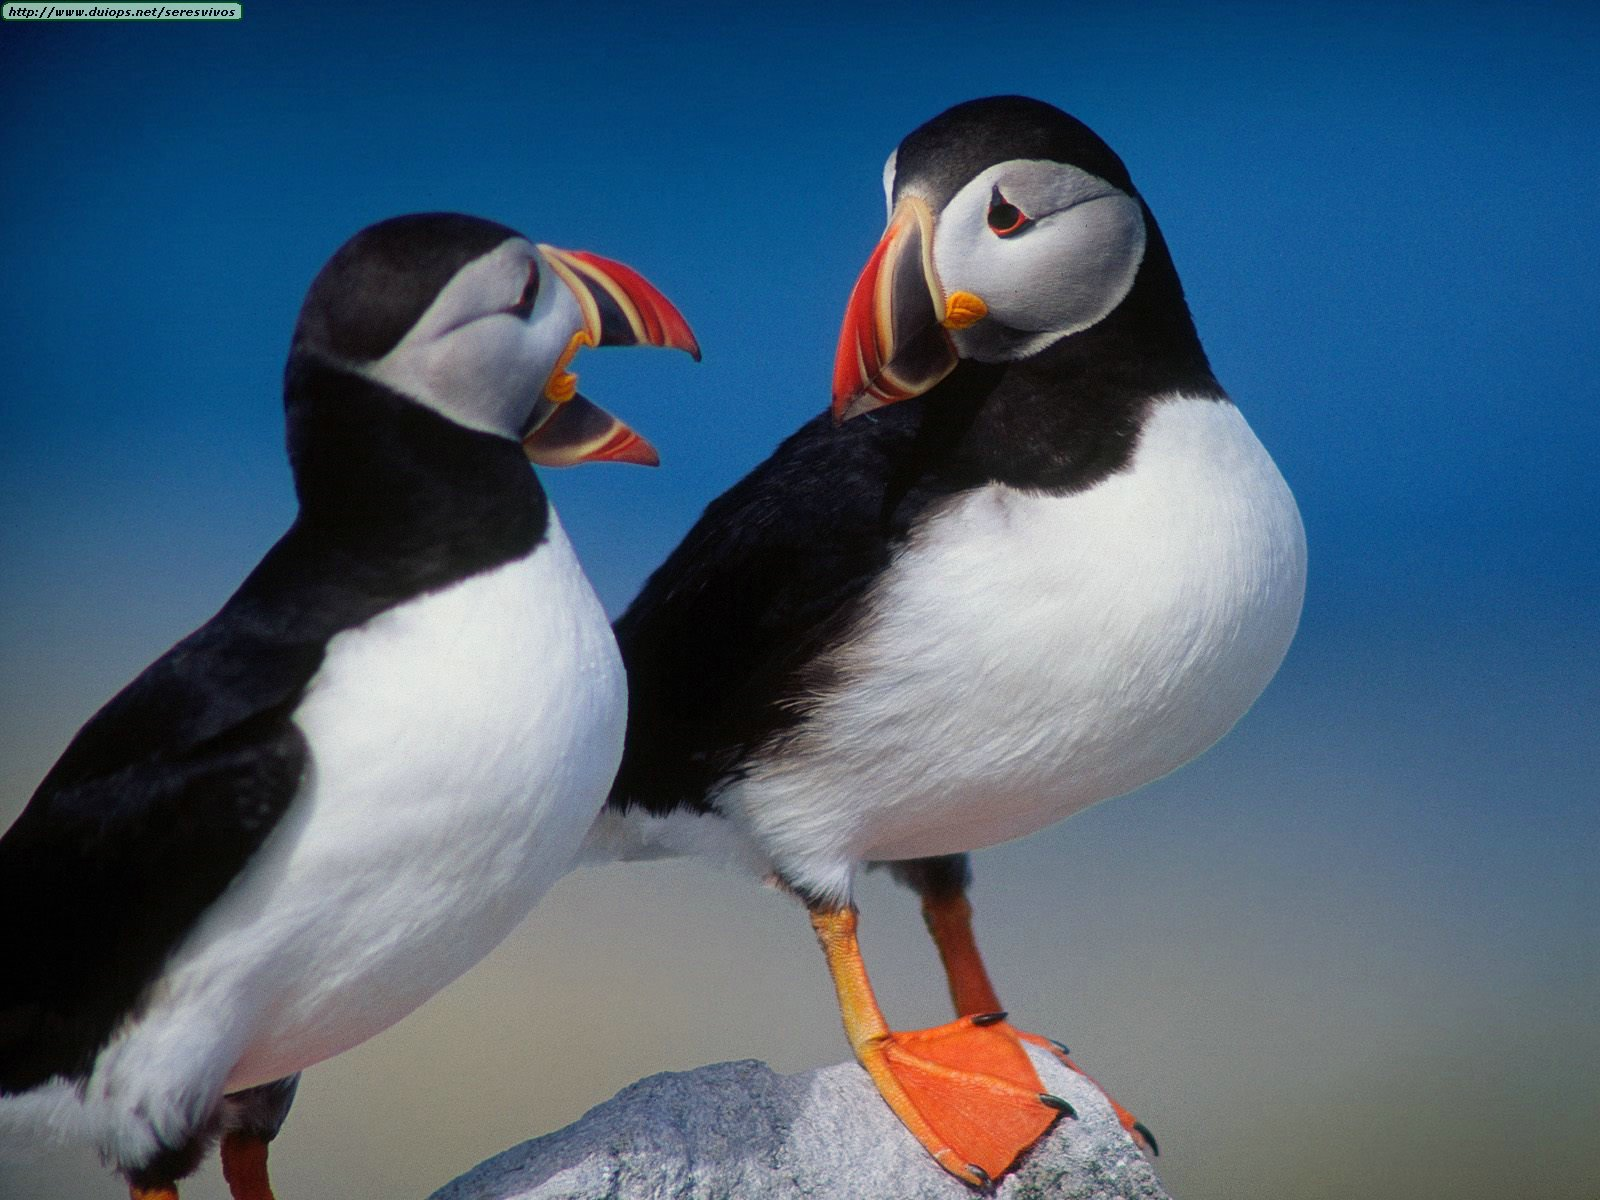 A%20Pair%20of%20Puffins.jpg